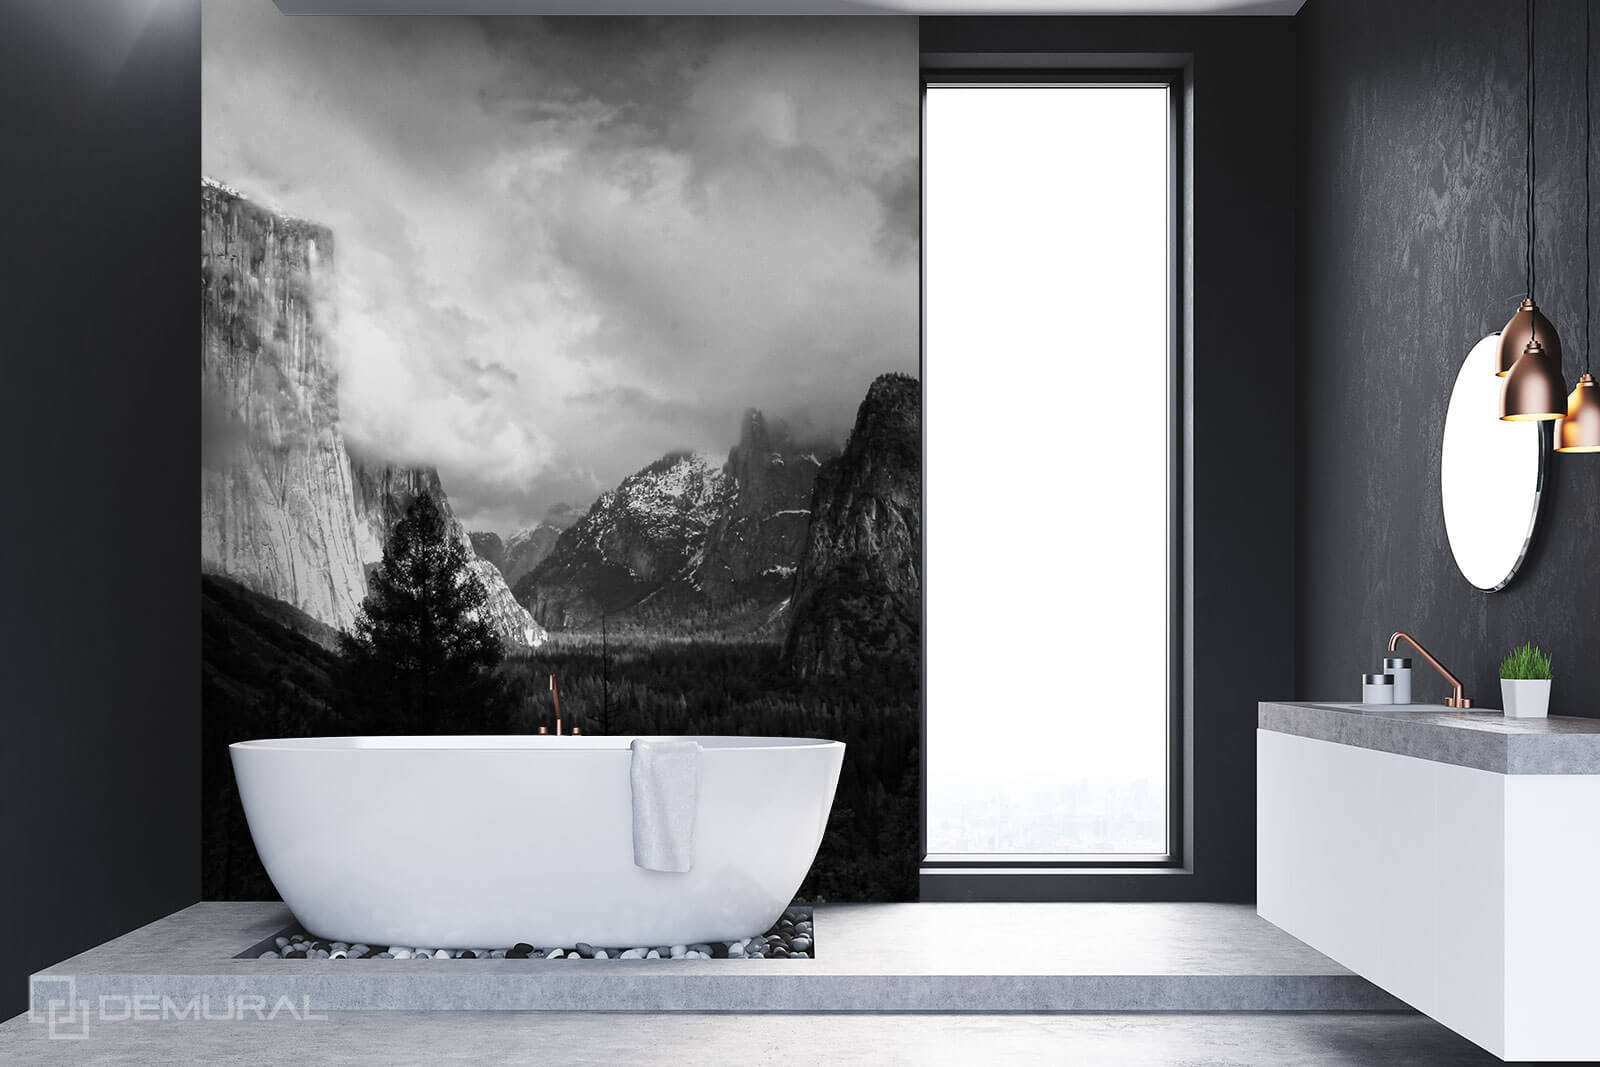 Photo wallpaper Mountain Panorama - Black white photo wallpaper - Demural